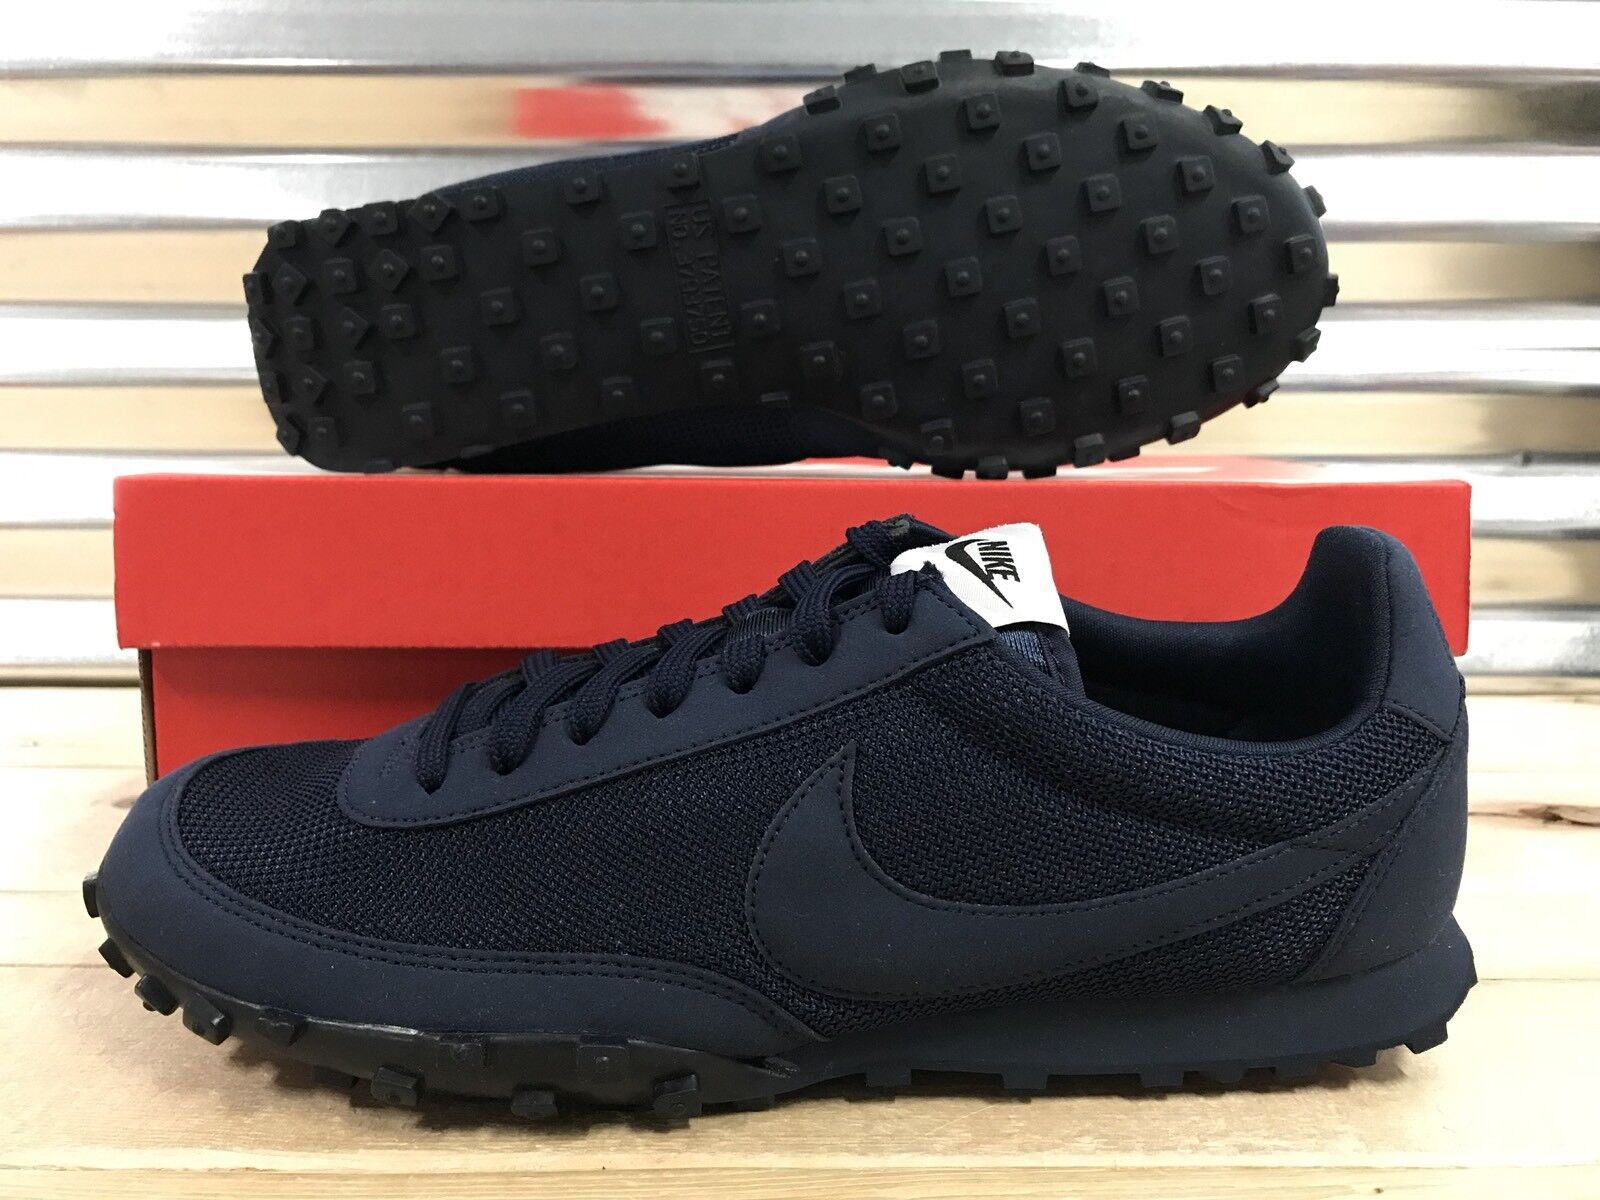 Nike Waffle Racer '17 PRM Running shoes shoes shoes Obsidian Navy bluee SZ ( 876257-400 ) 943278